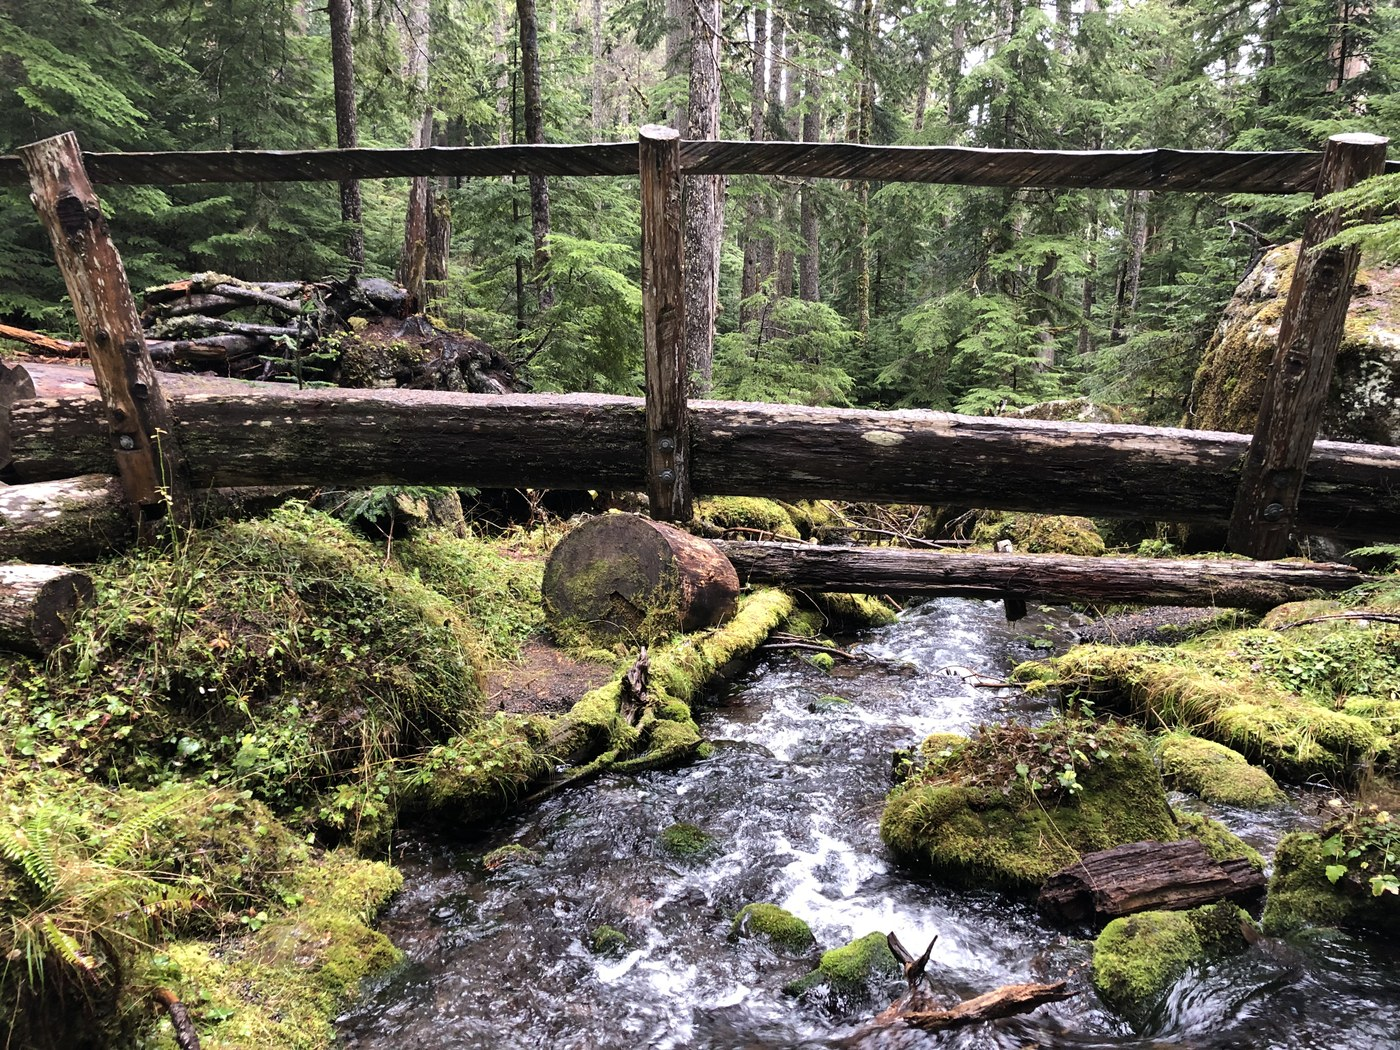 Mossy bridge over a creek on the Lake Angeles Trail. Photo by bzimmer.